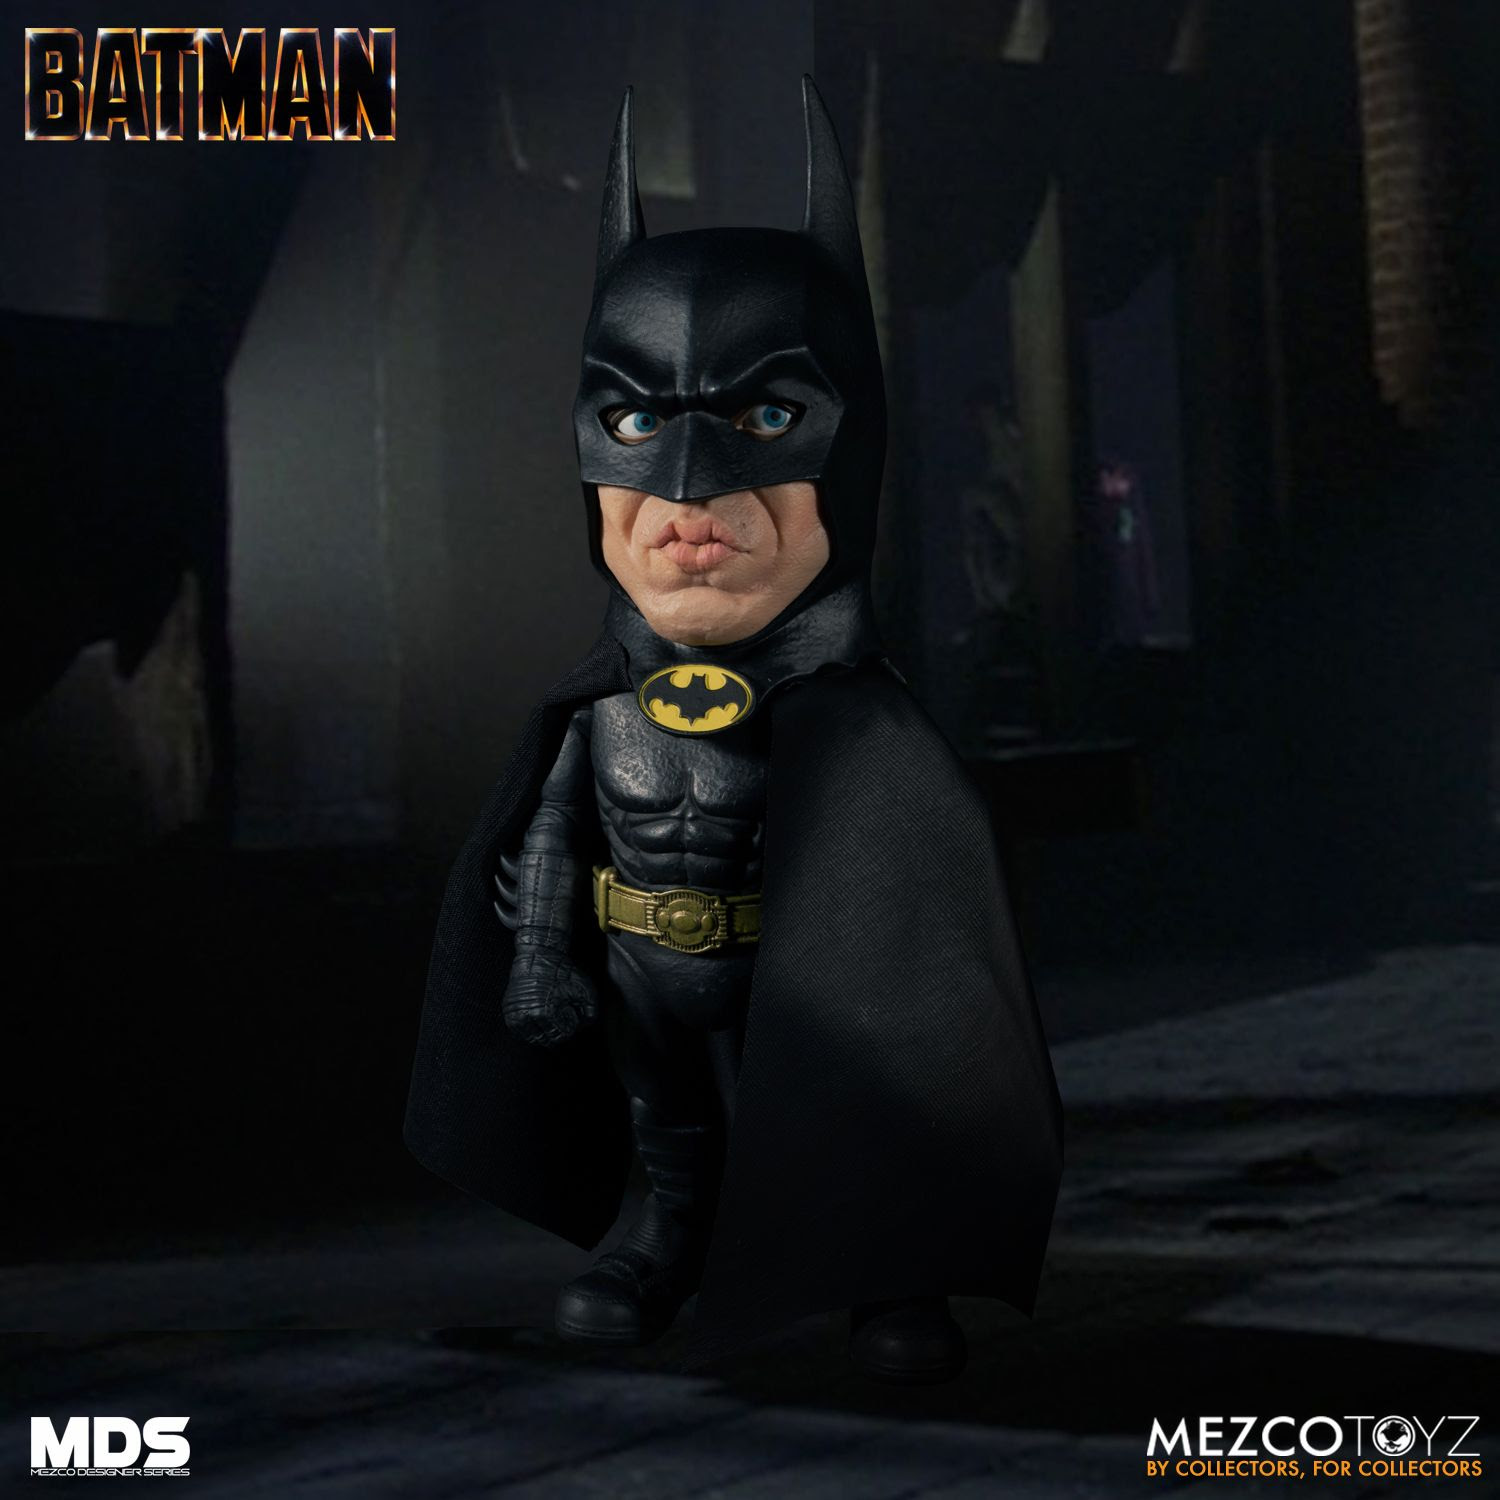 Image of Mezco Designer Series Deluxe Batman (1989) - Q1 2020